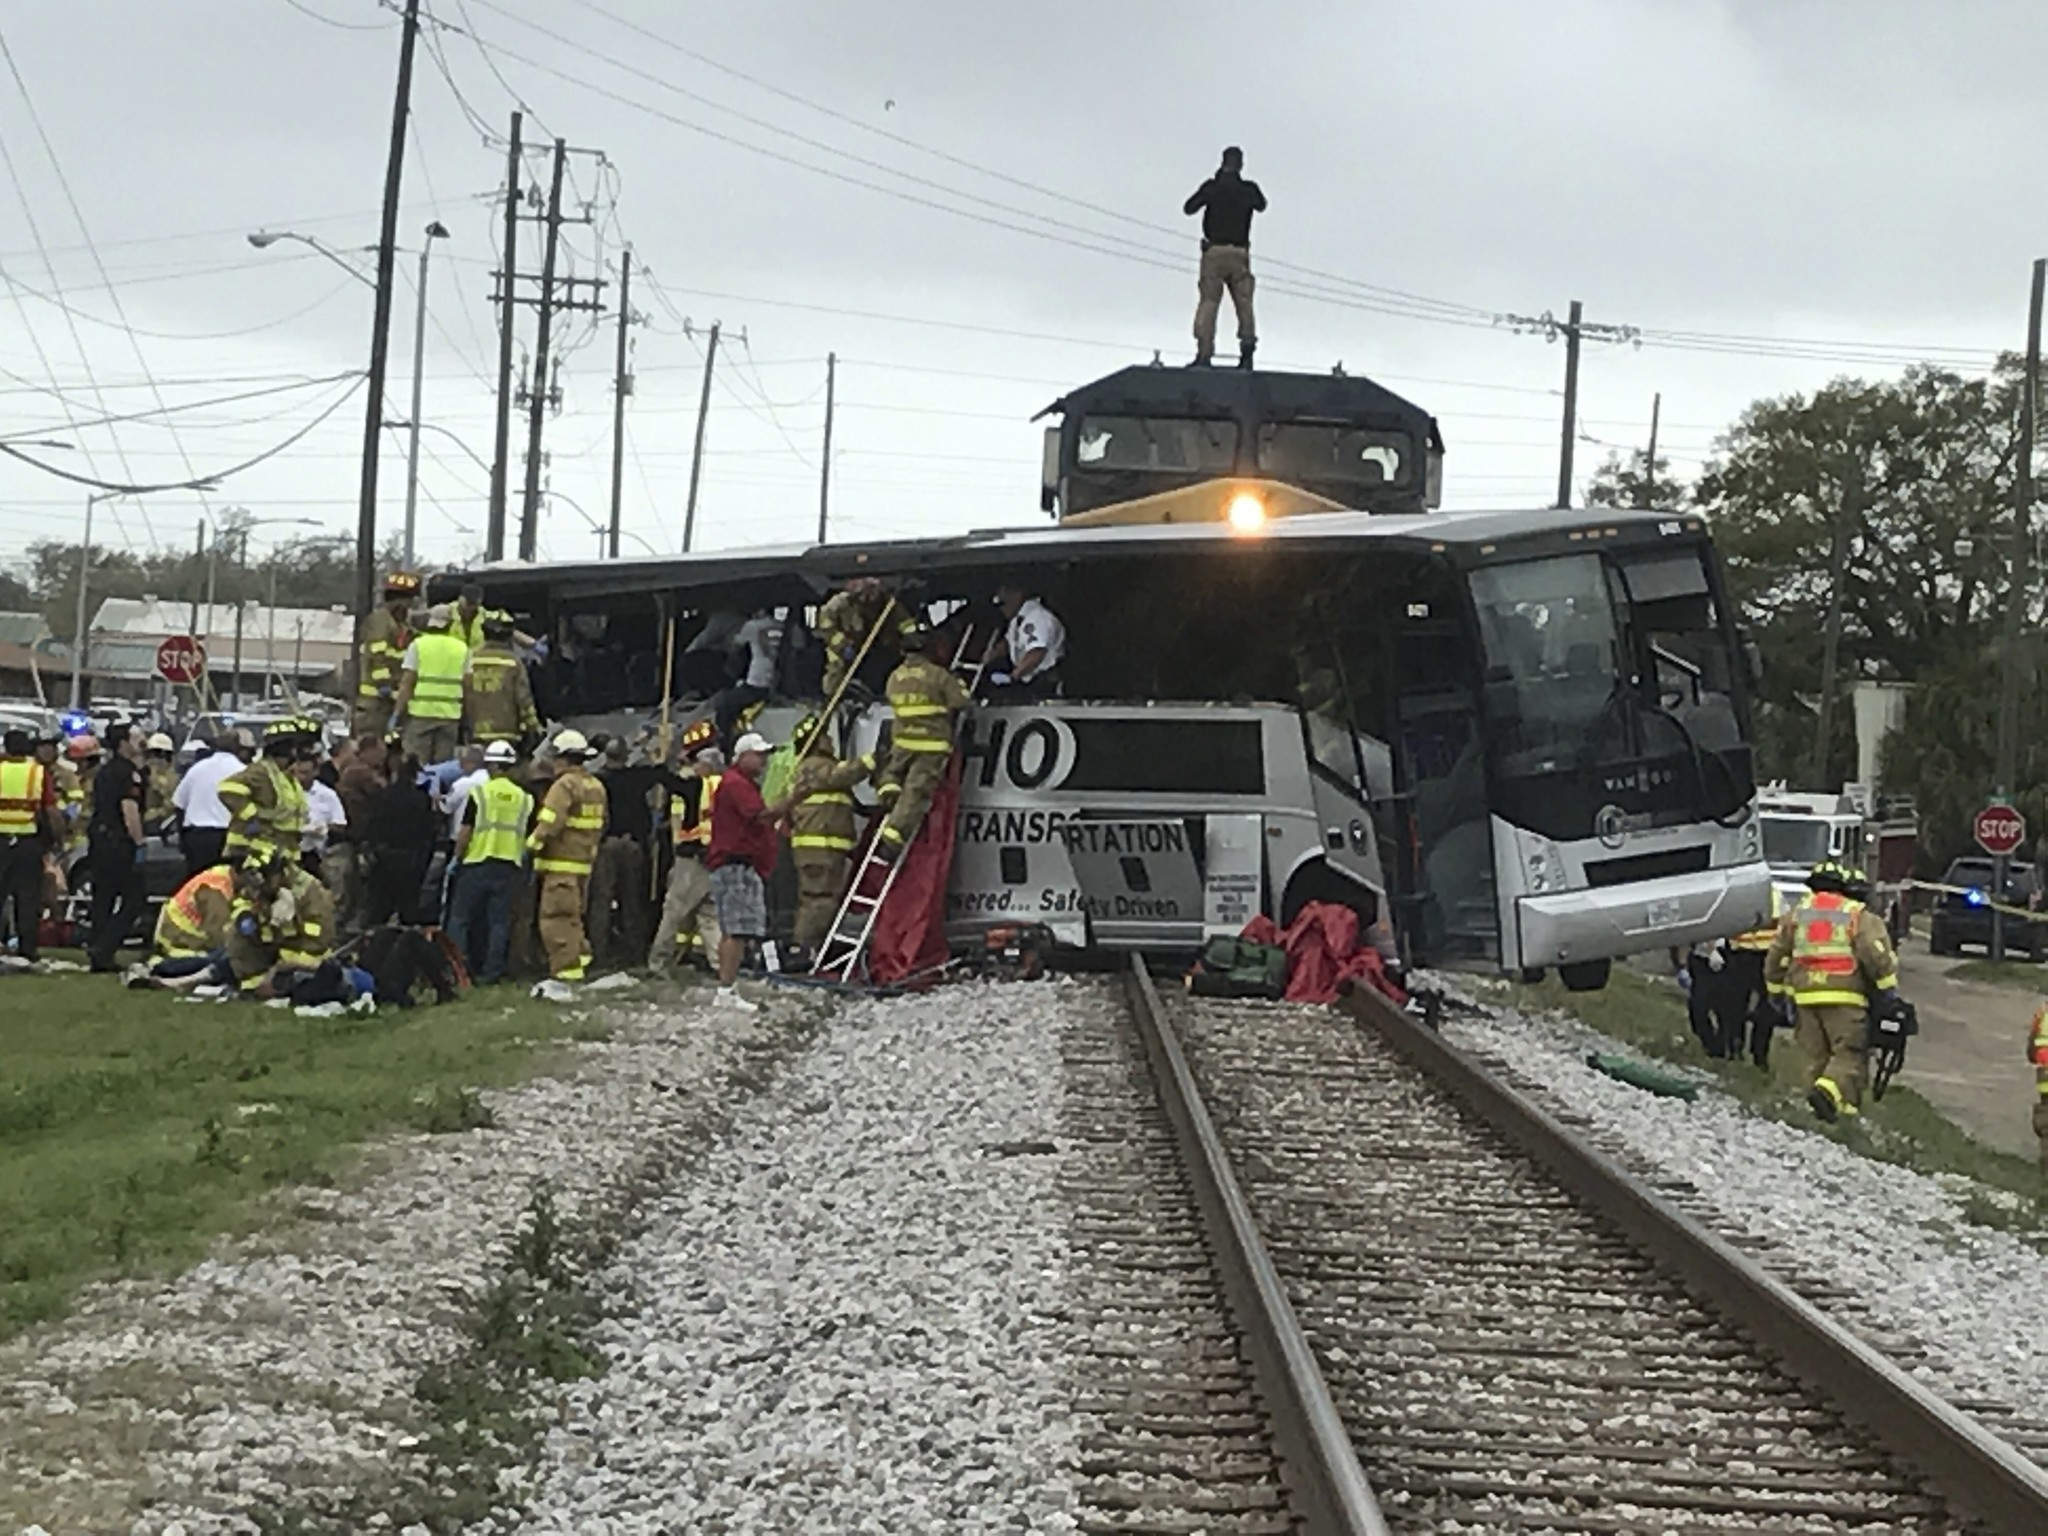 4 people on senior center trip killed after train collides with bus in mississippi chicago tribune